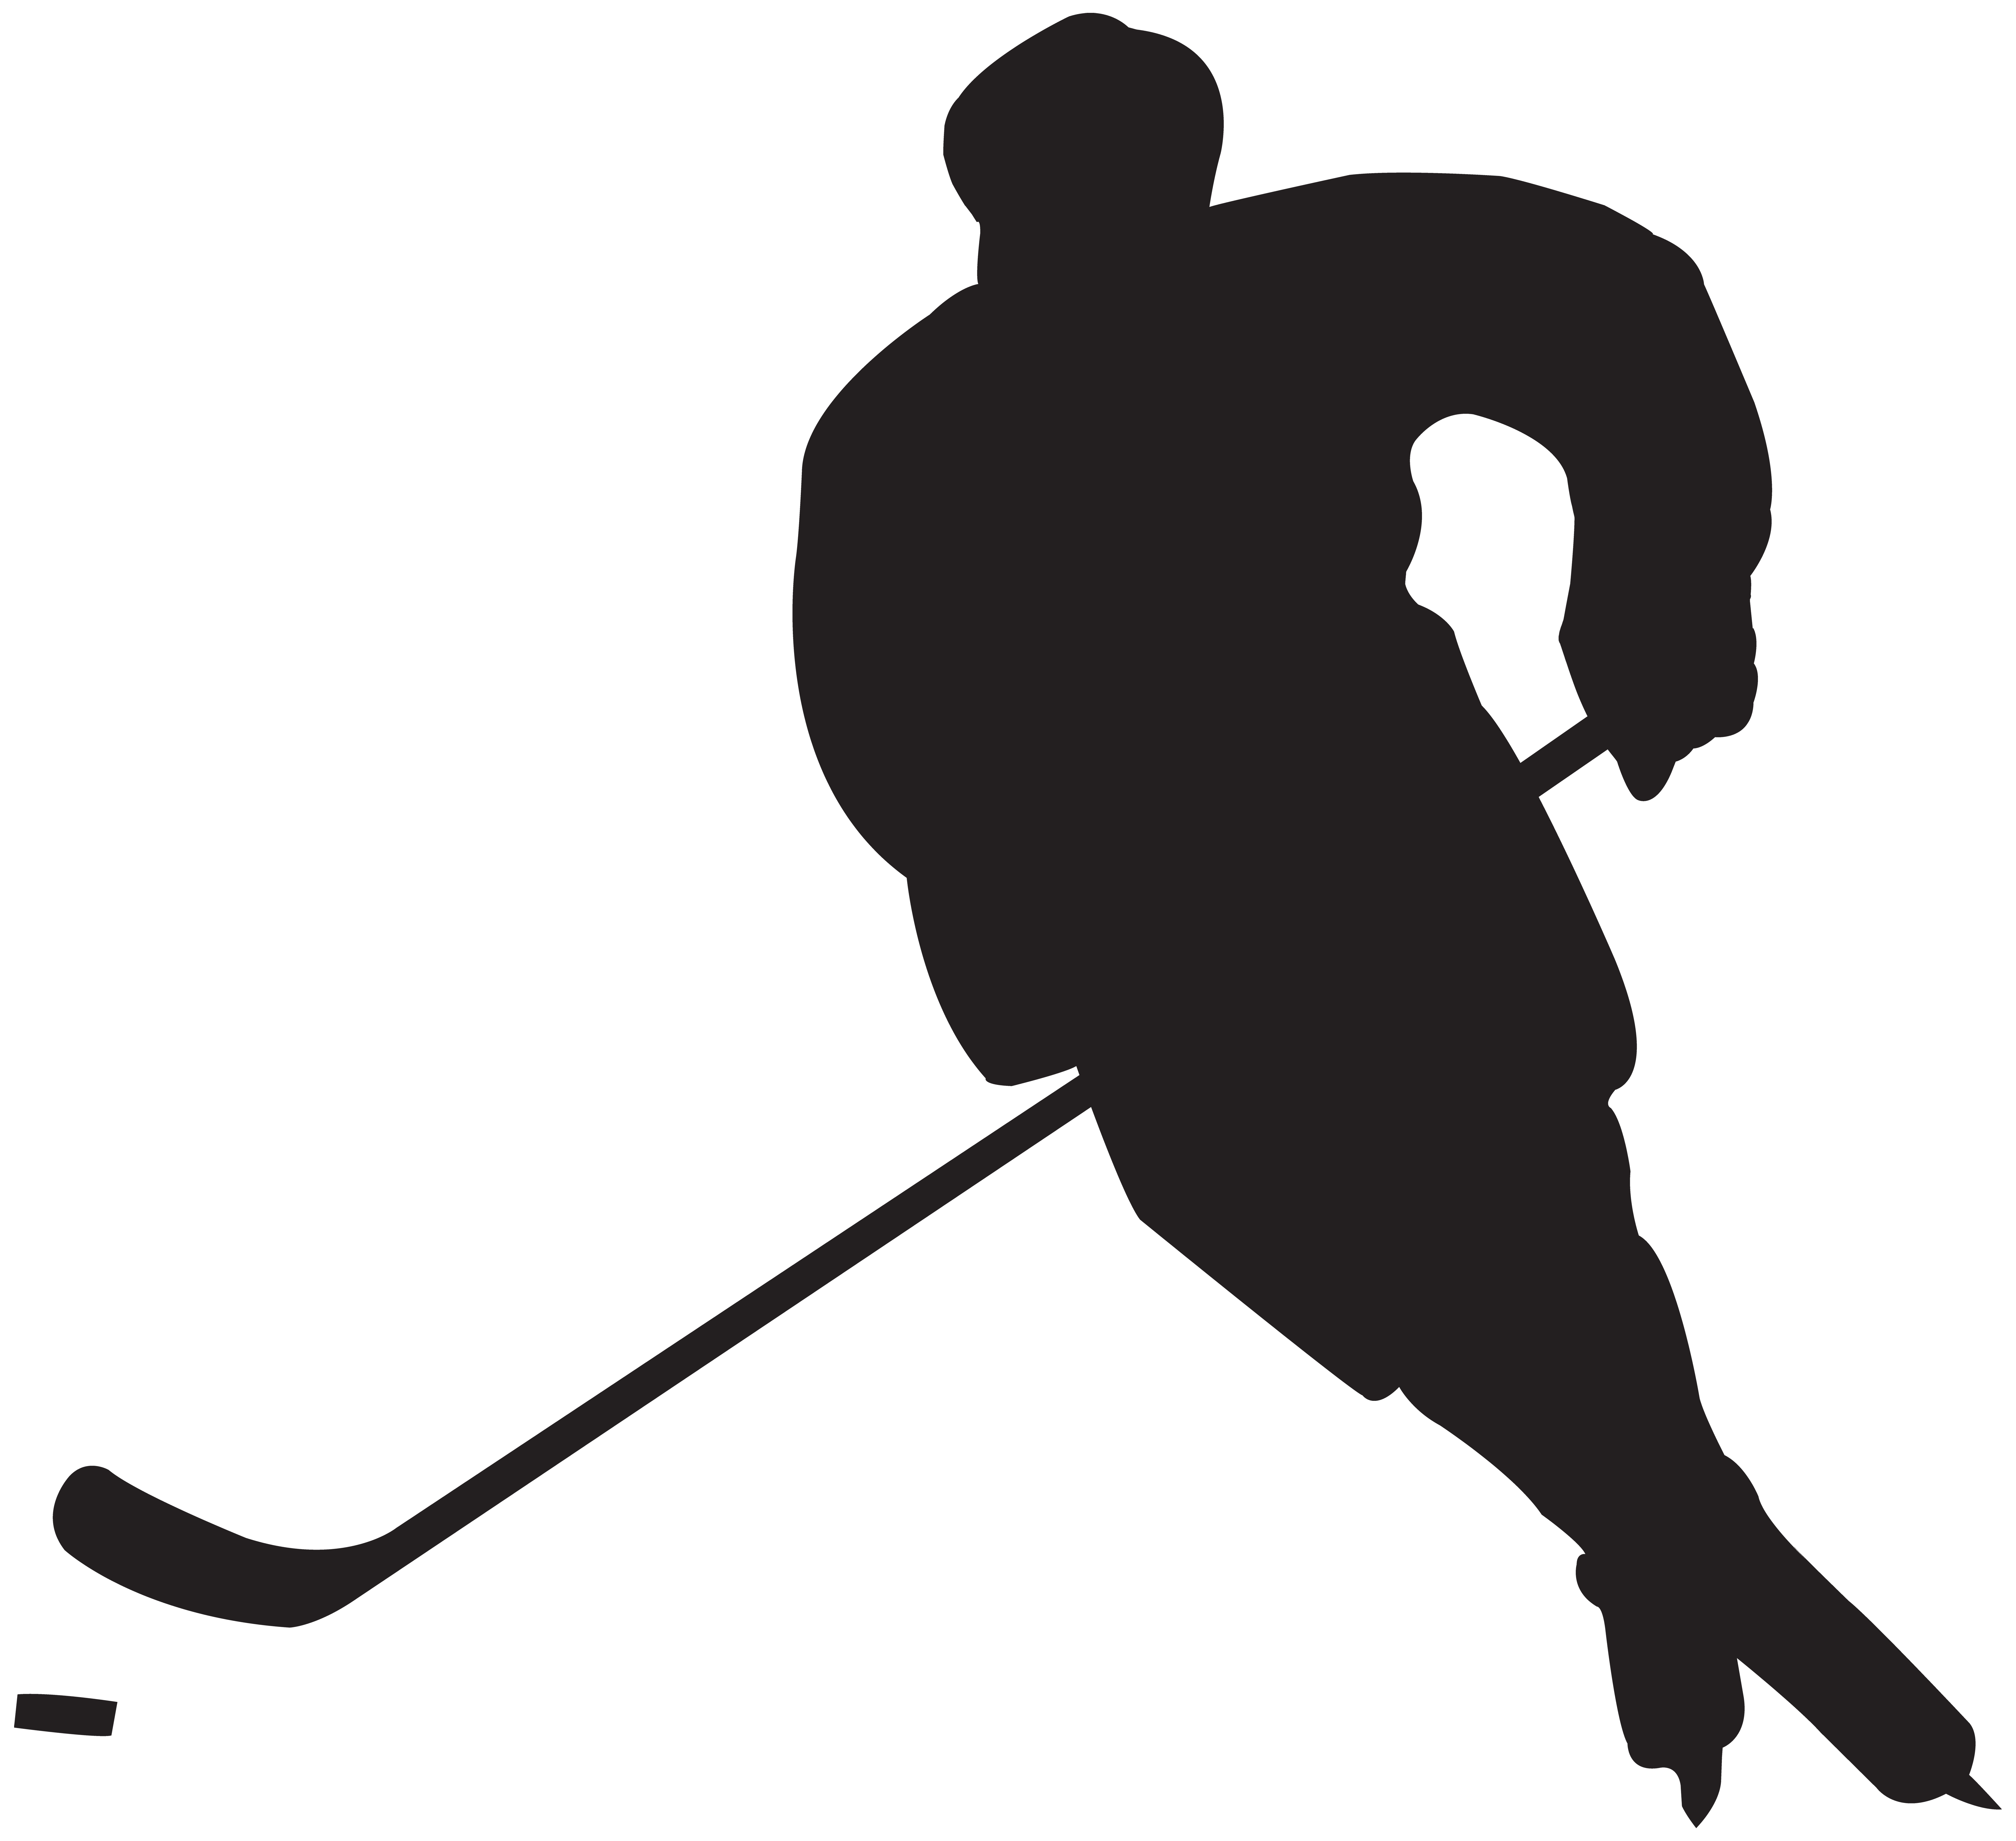 clip art transparent download Hockey clipart. Player silhouette png clip